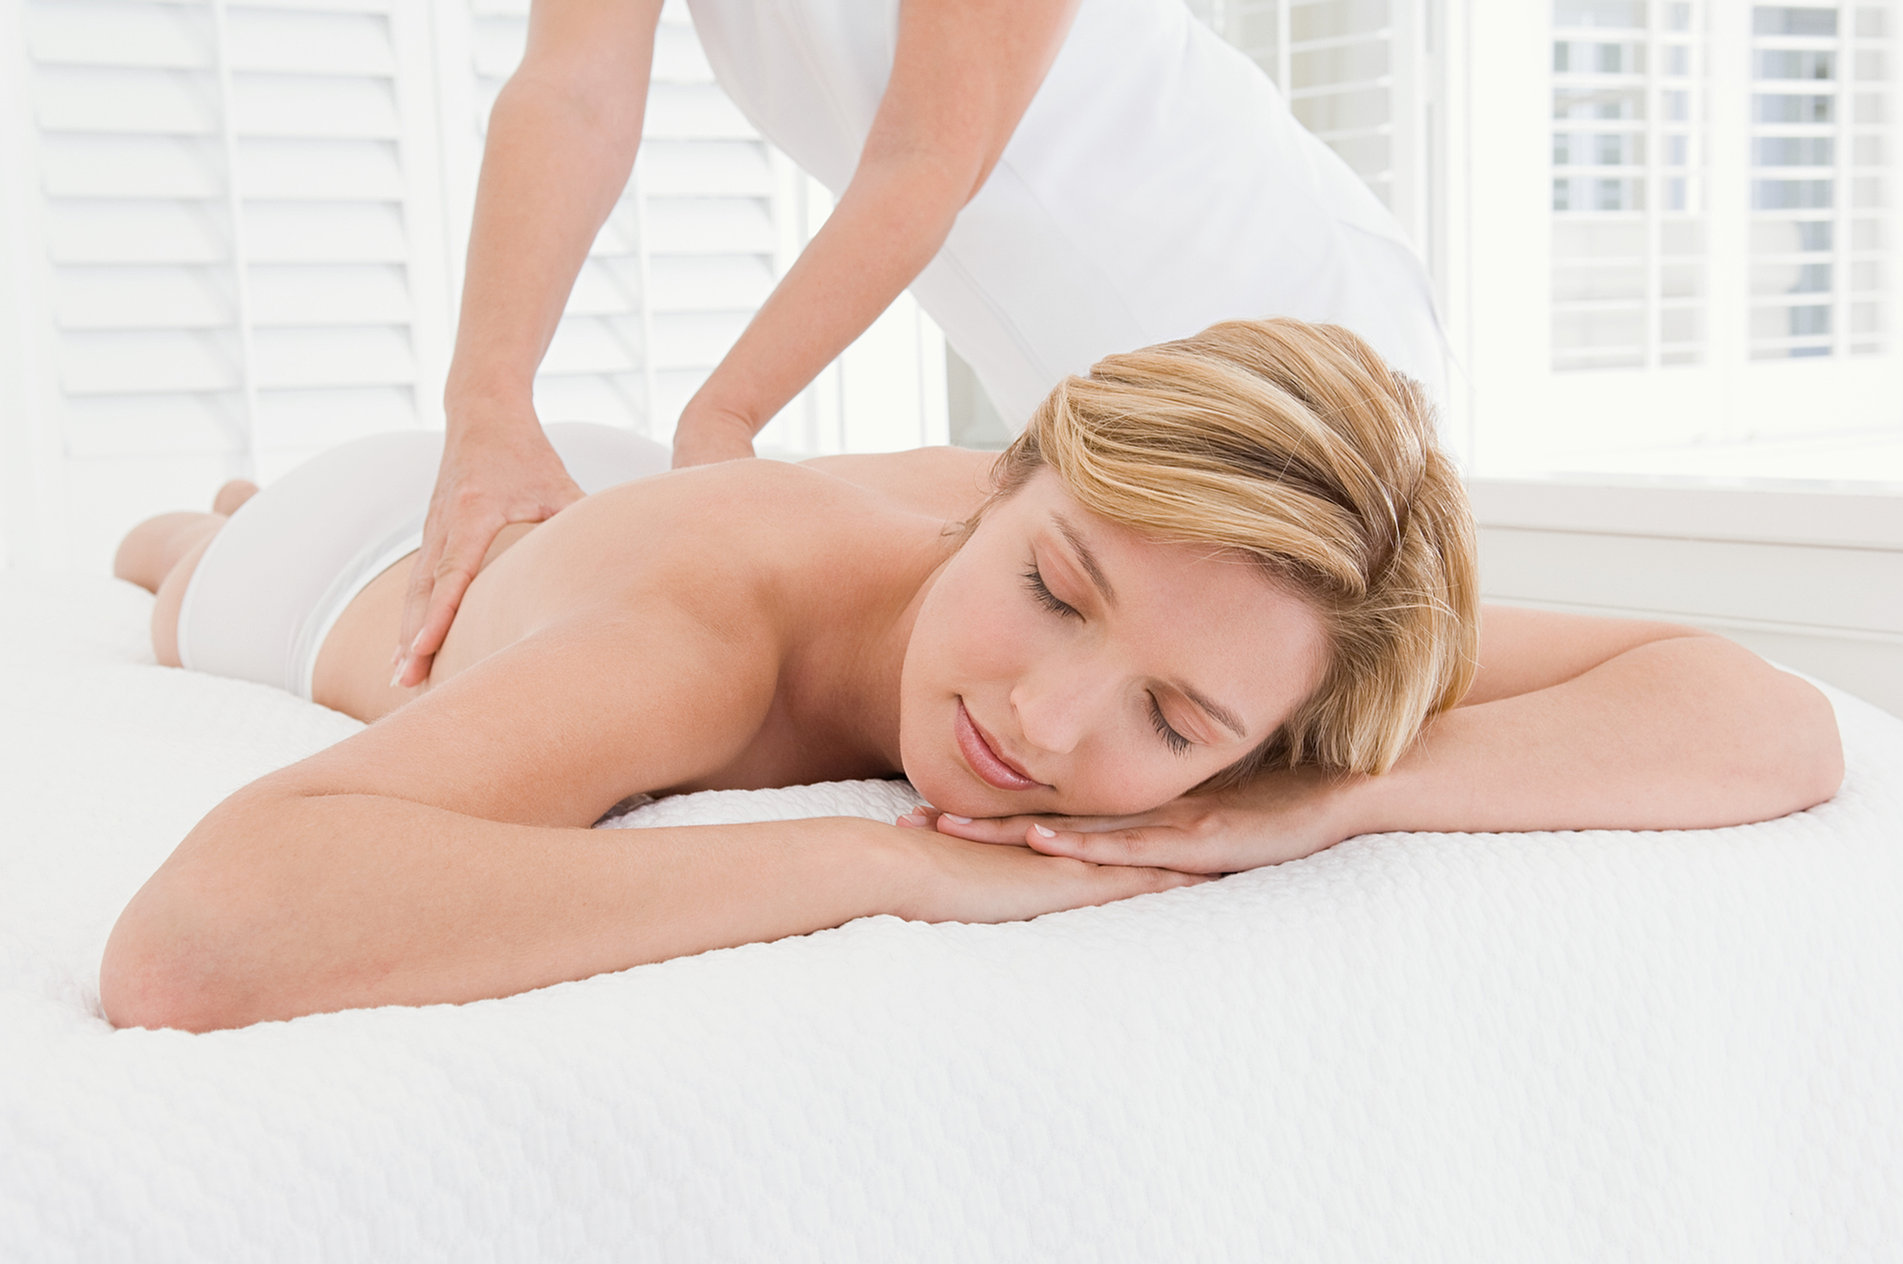 Anal Is An Aproved Massage Technique For Those Interested